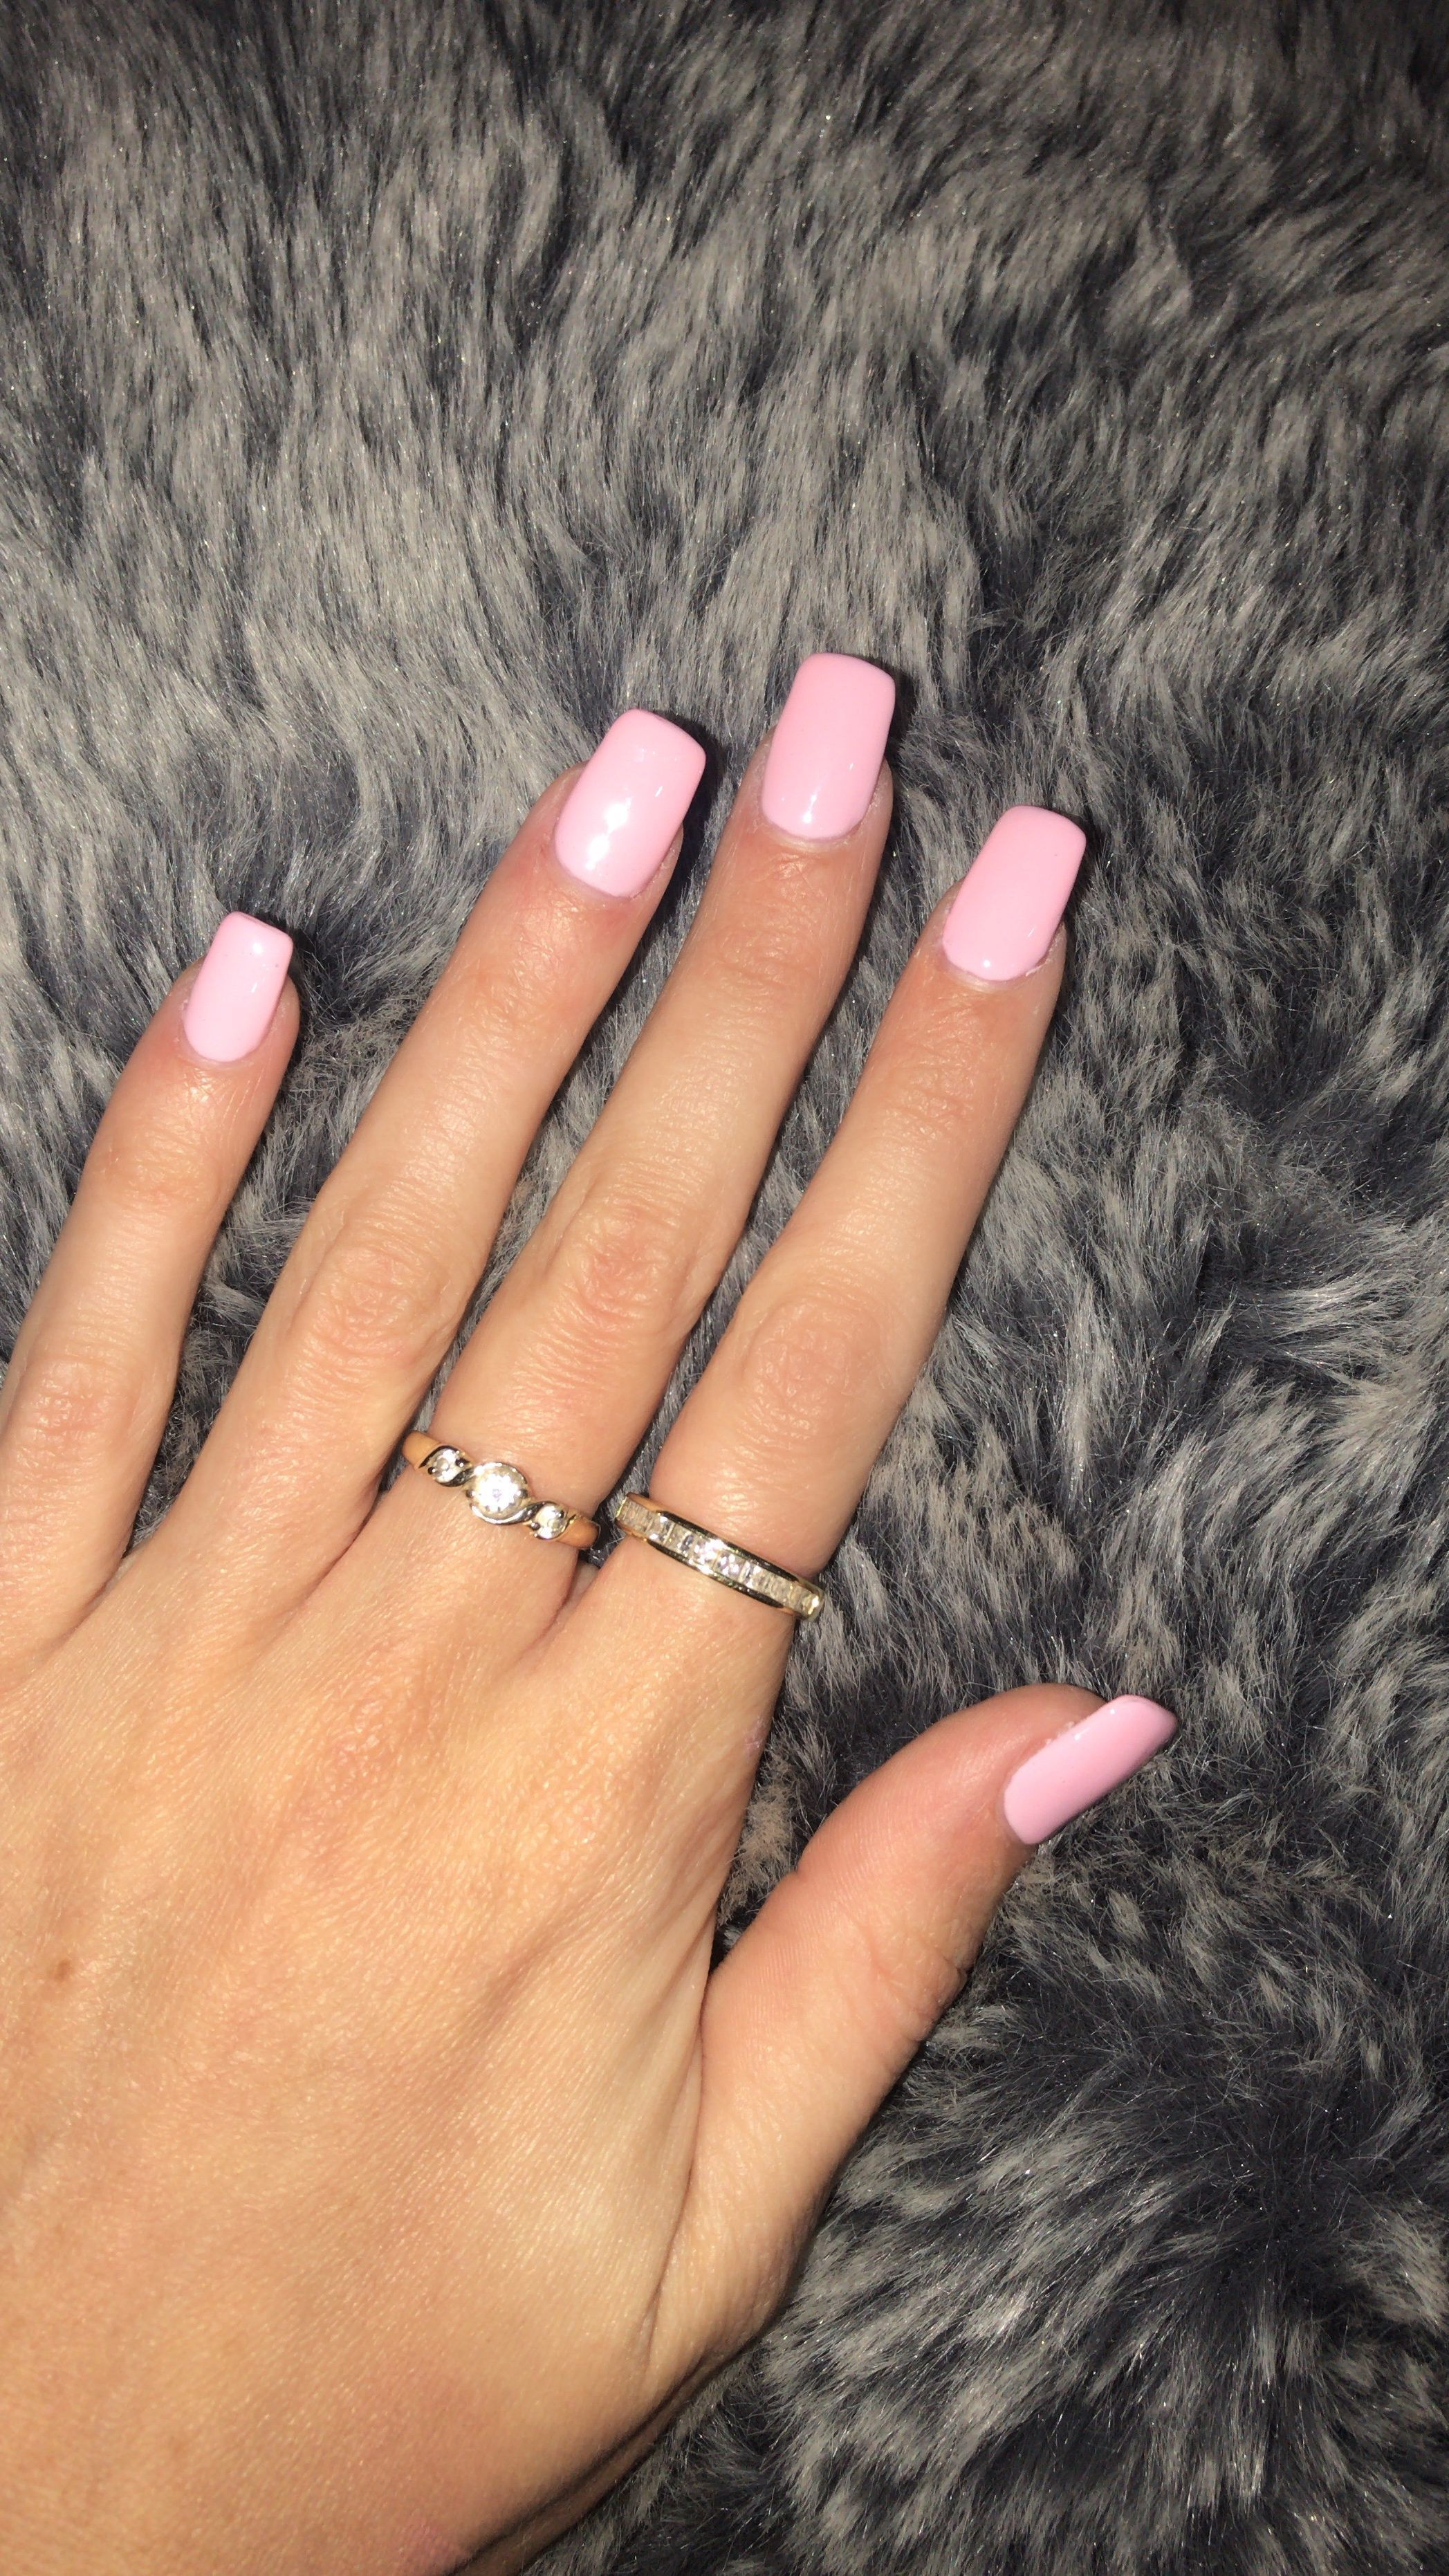 Square Baby Pink Acrylic Nails Colour Is Sunset Fog 599 Acrylicnails2018 Nailideas Pink Acrylic Nails Light Pink Acrylic Nails White Acrylic Nails